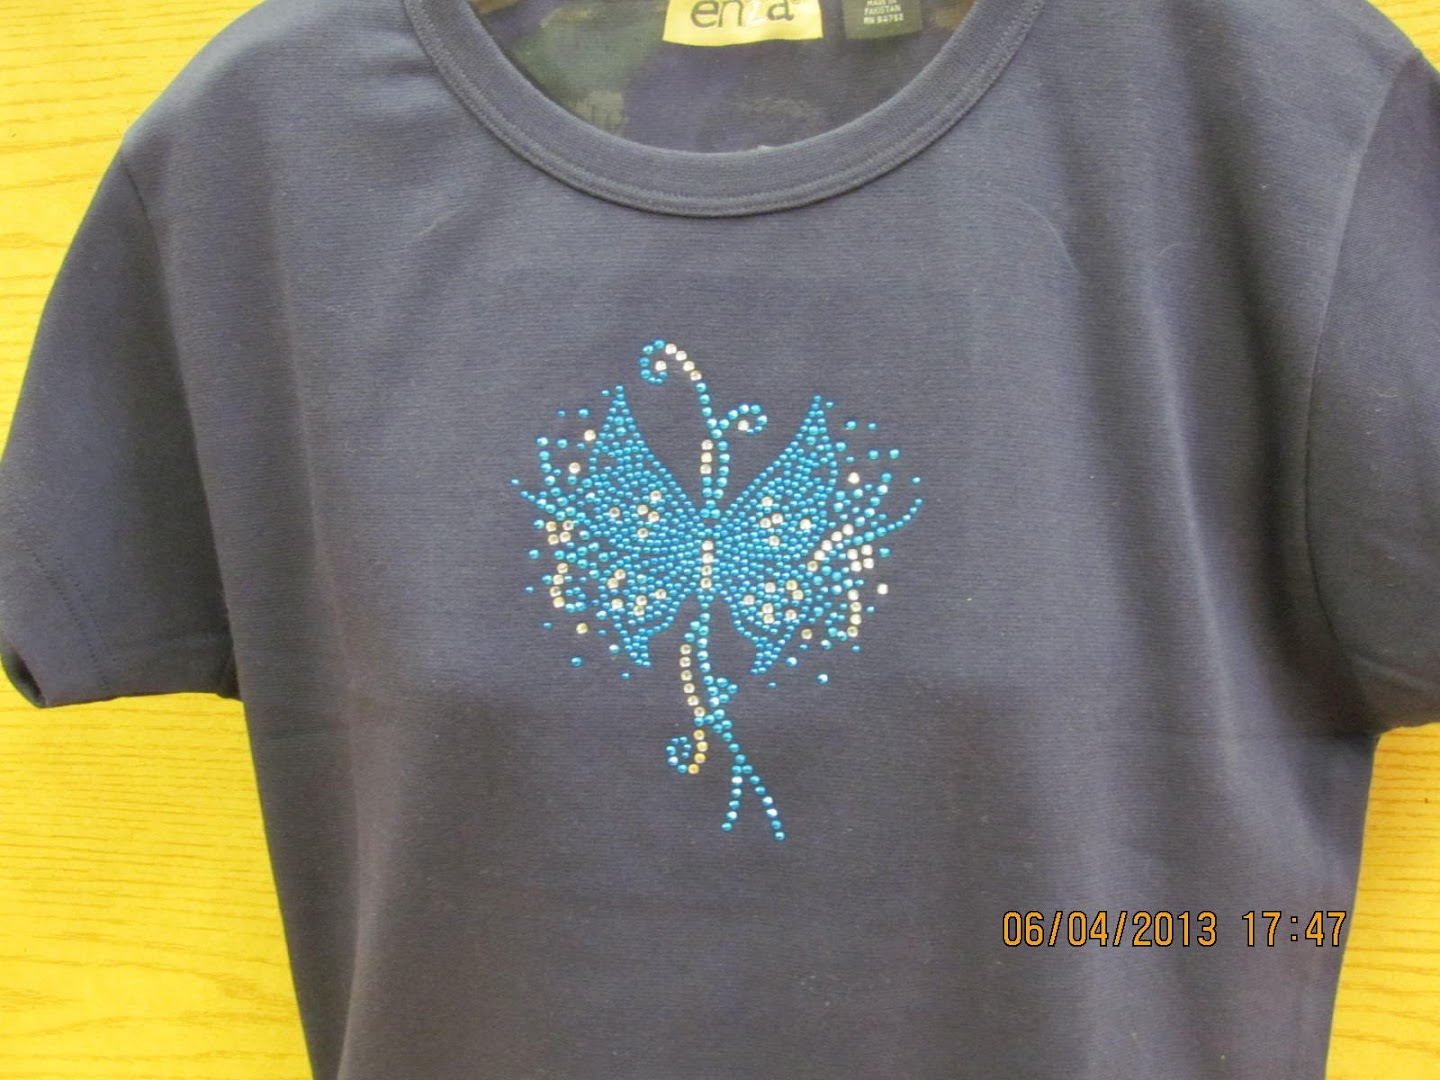 Stitches By Design Embroidery Service In Kalamazoo